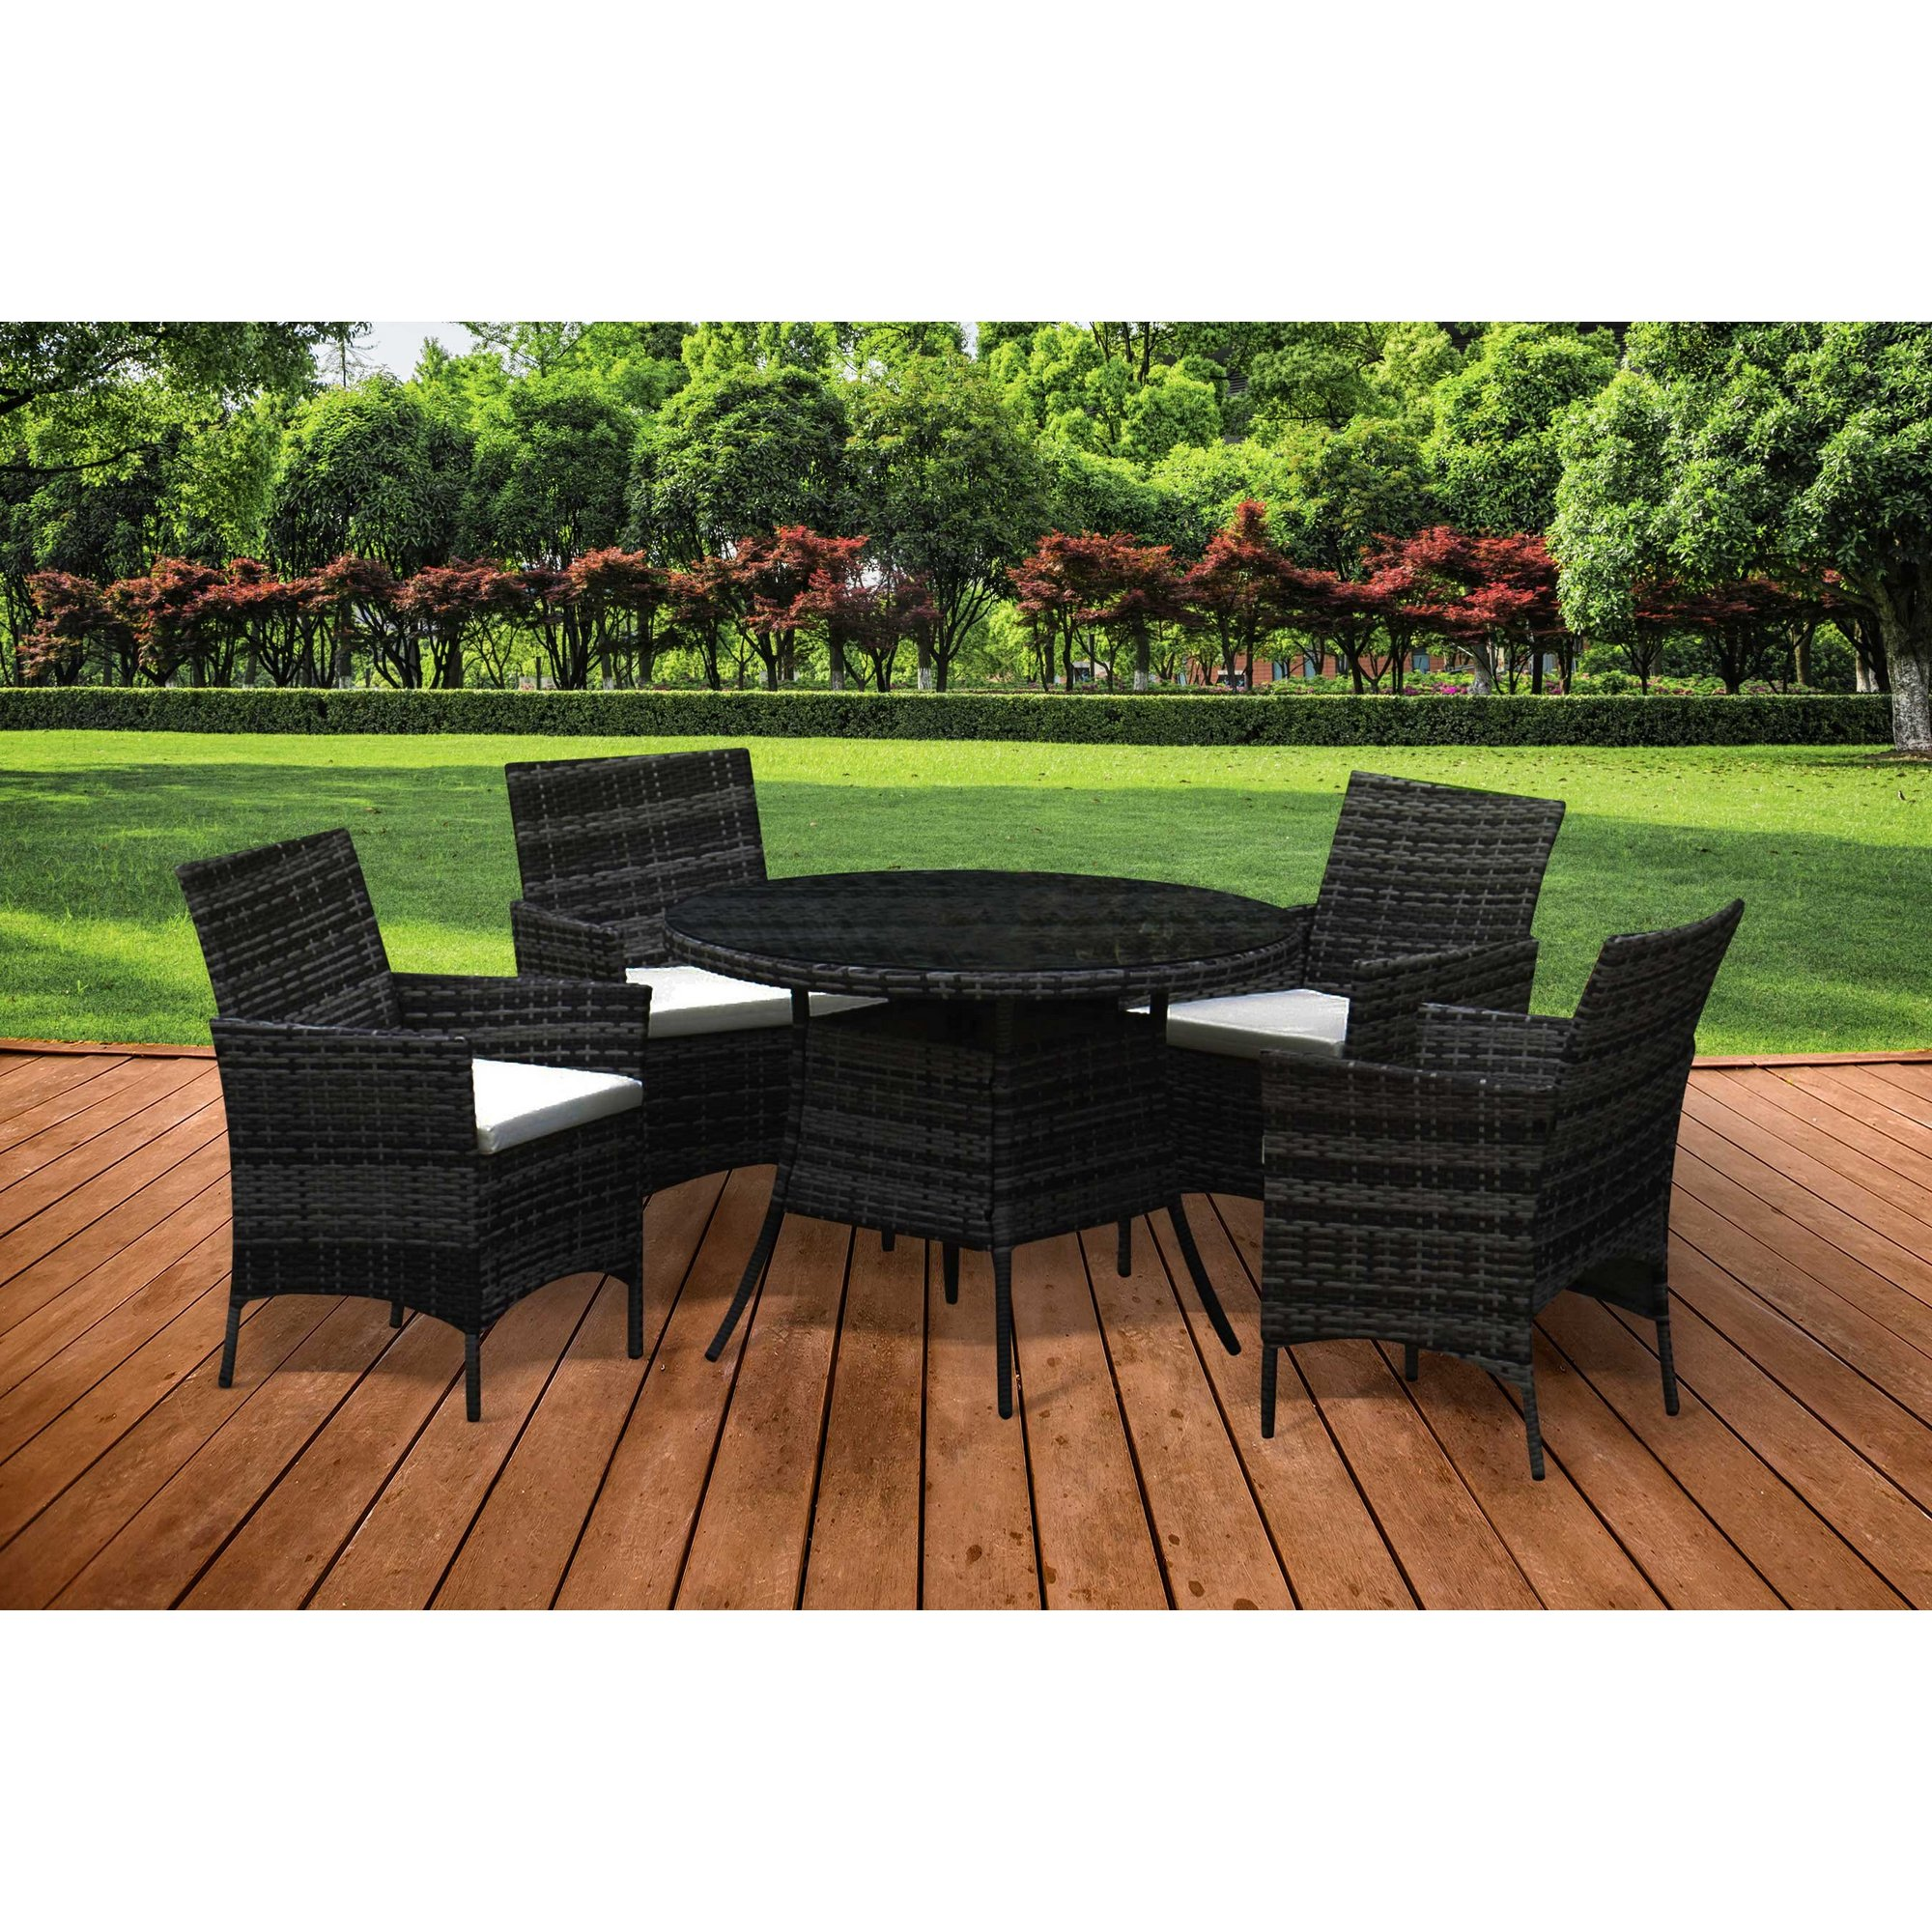 Image of 4 Chair Rattan Garden Dining Set with Round Table